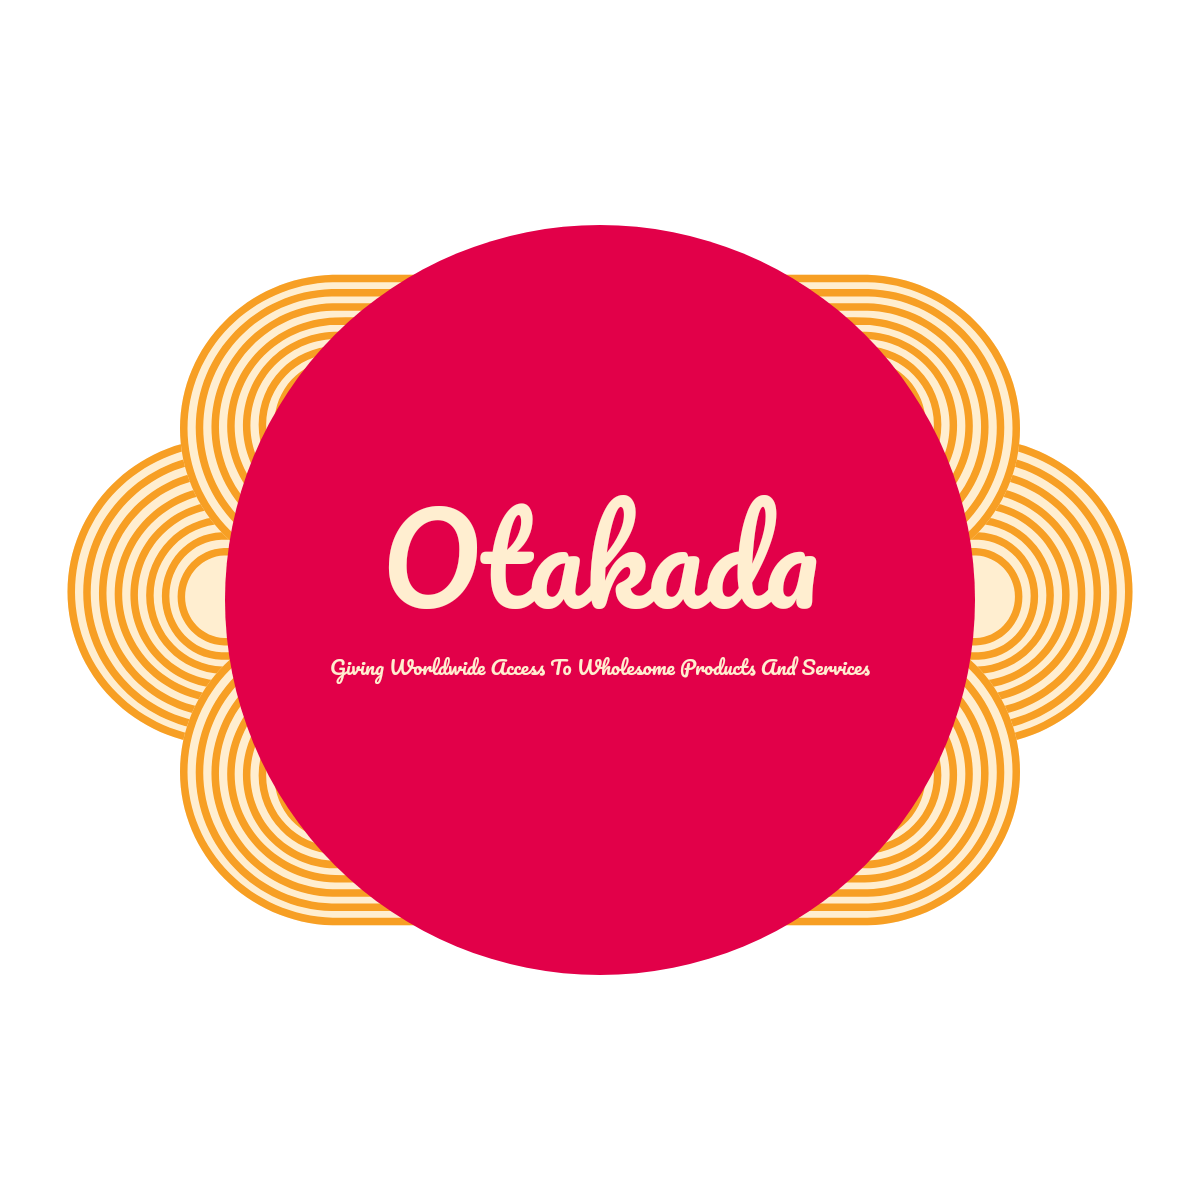 OtakadaValueStore.org – The Believers Shopping World For Wholesome Products and Services